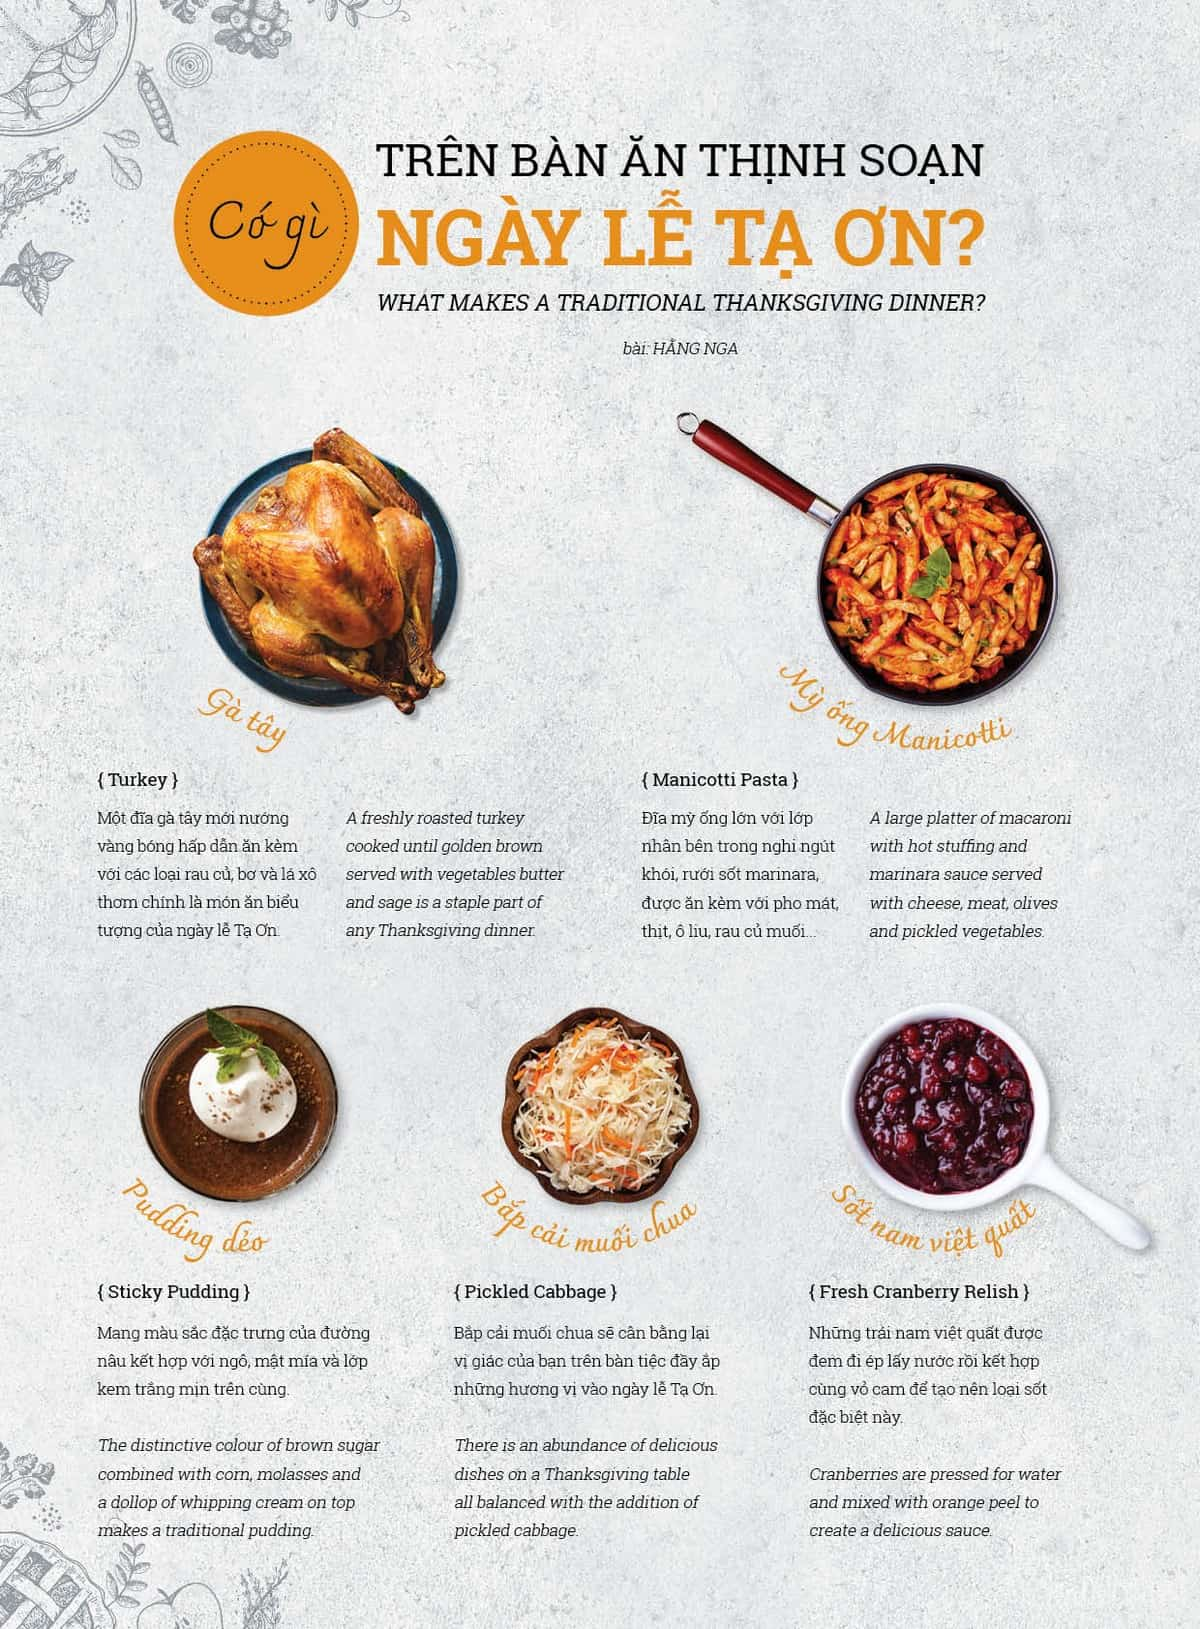 Wanderlust Tips | What makes a traditional Thanksgiving dinner?